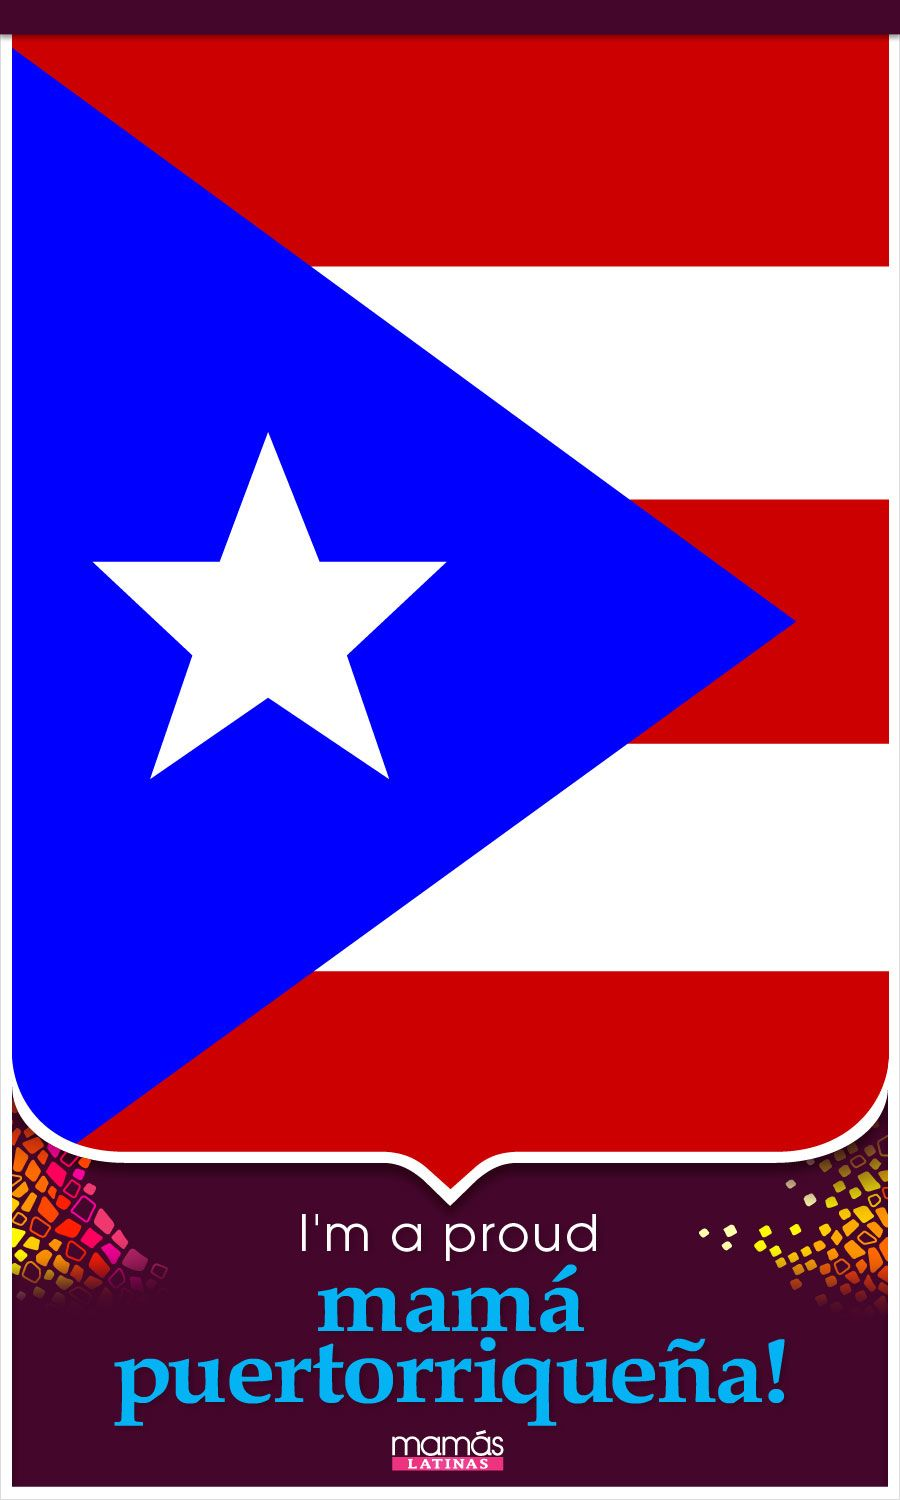 Repin If You Re A Proud Mama Puertorriquena 100 Orgullosa De Ser Una Mama Puertorriquena Puerto Ricans Puerto Rican Pride Latin Inspired